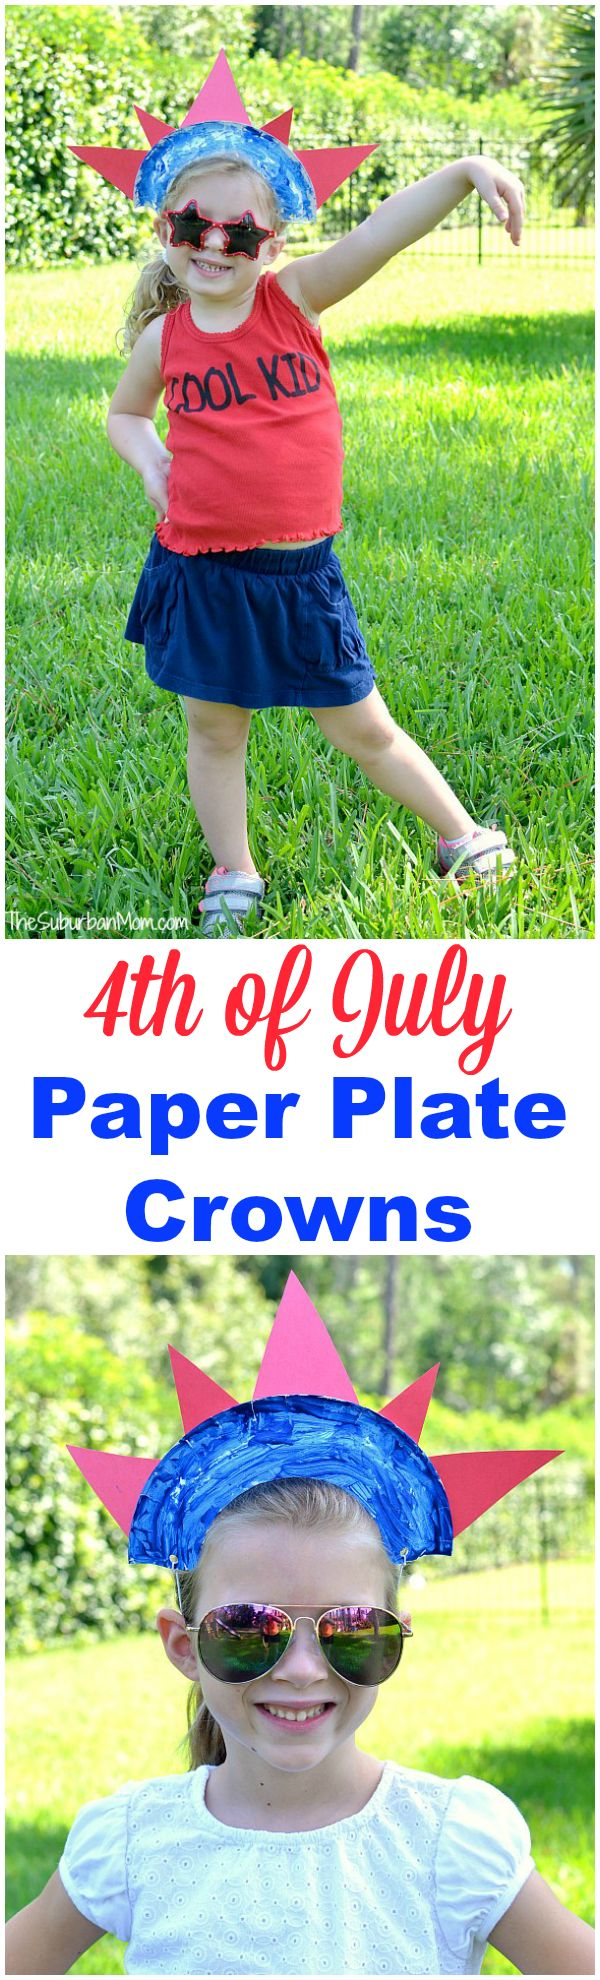 A quick and easy 4th of July kids craft - a 4th of July Paper Plate Crown. Let your kids help make this simple craft that doubles as a fashion accessory.